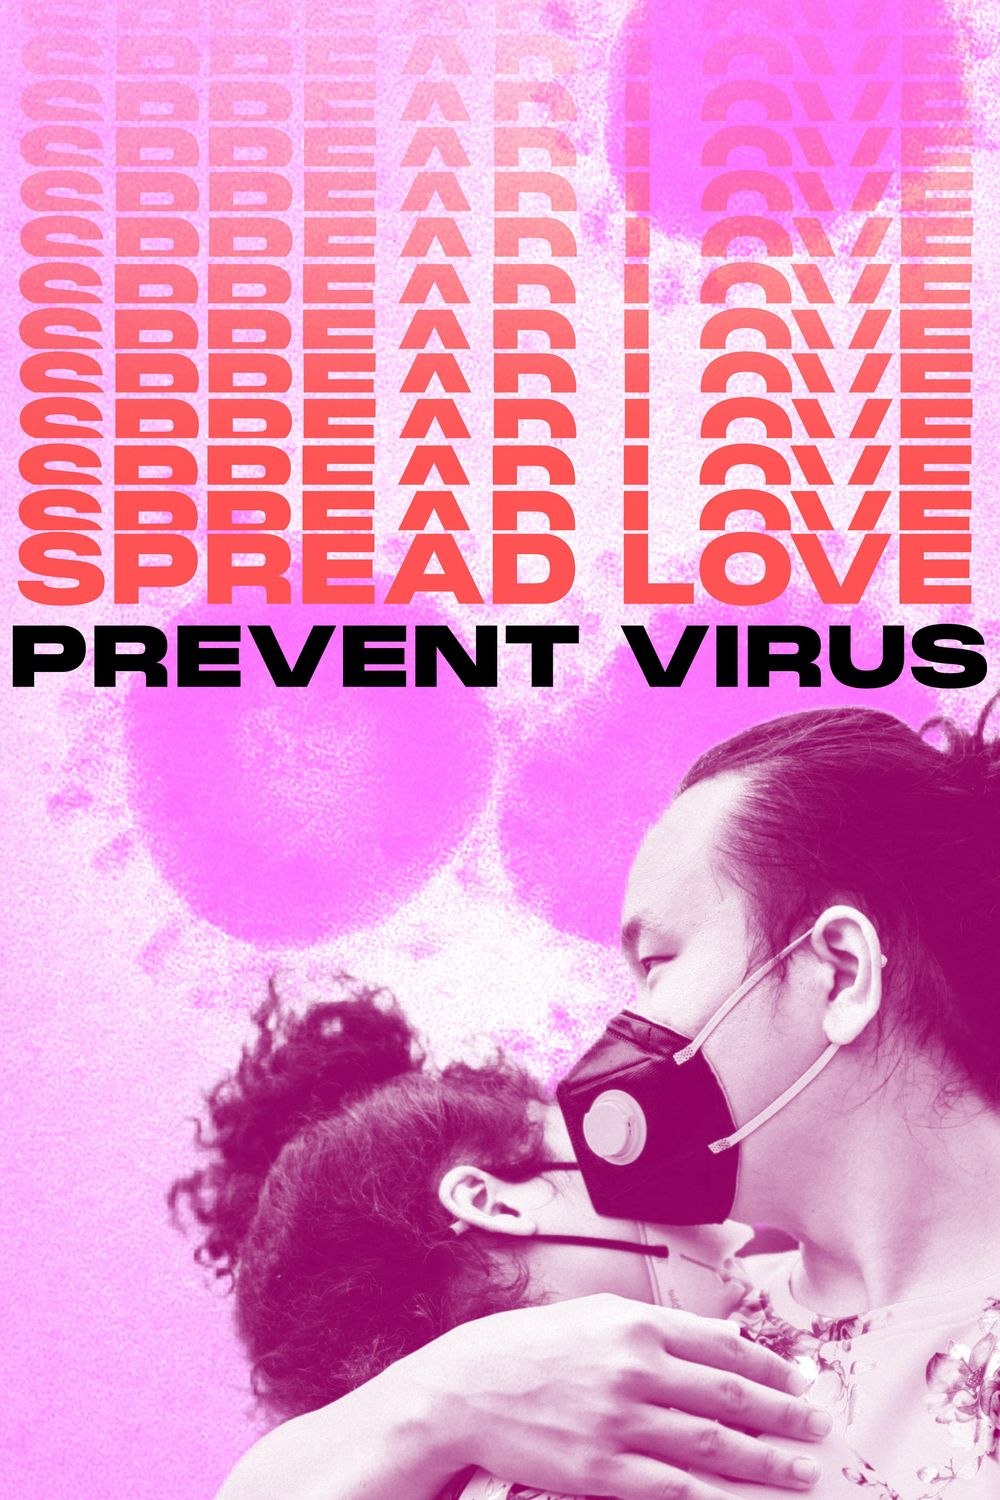 Spread Love Prevent Virus Posters - image 1 - student project